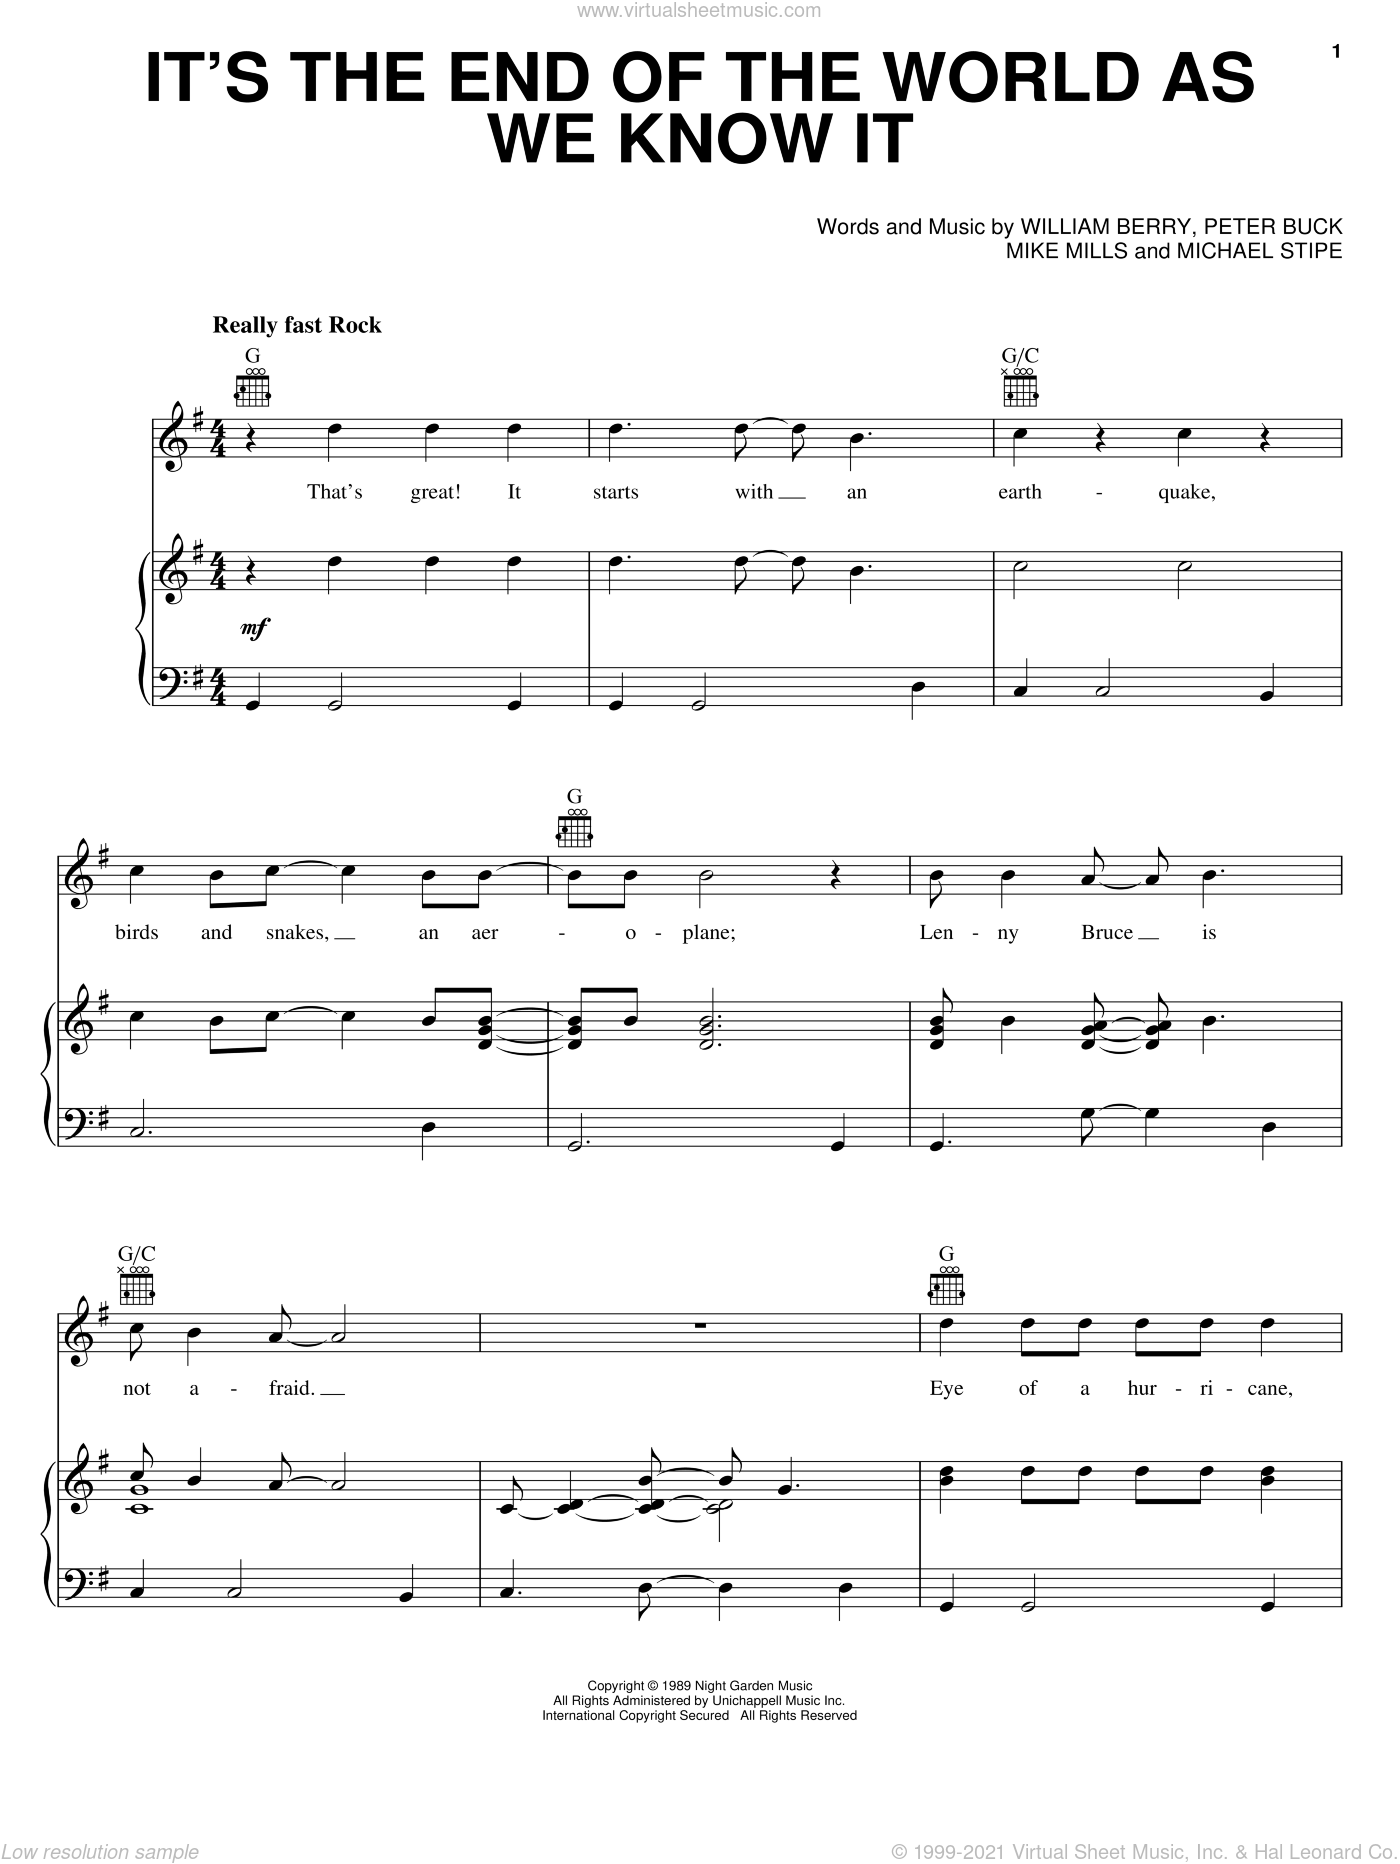 It's The End Of The World As We Know It sheet music for voice, piano or guitar by William Berry